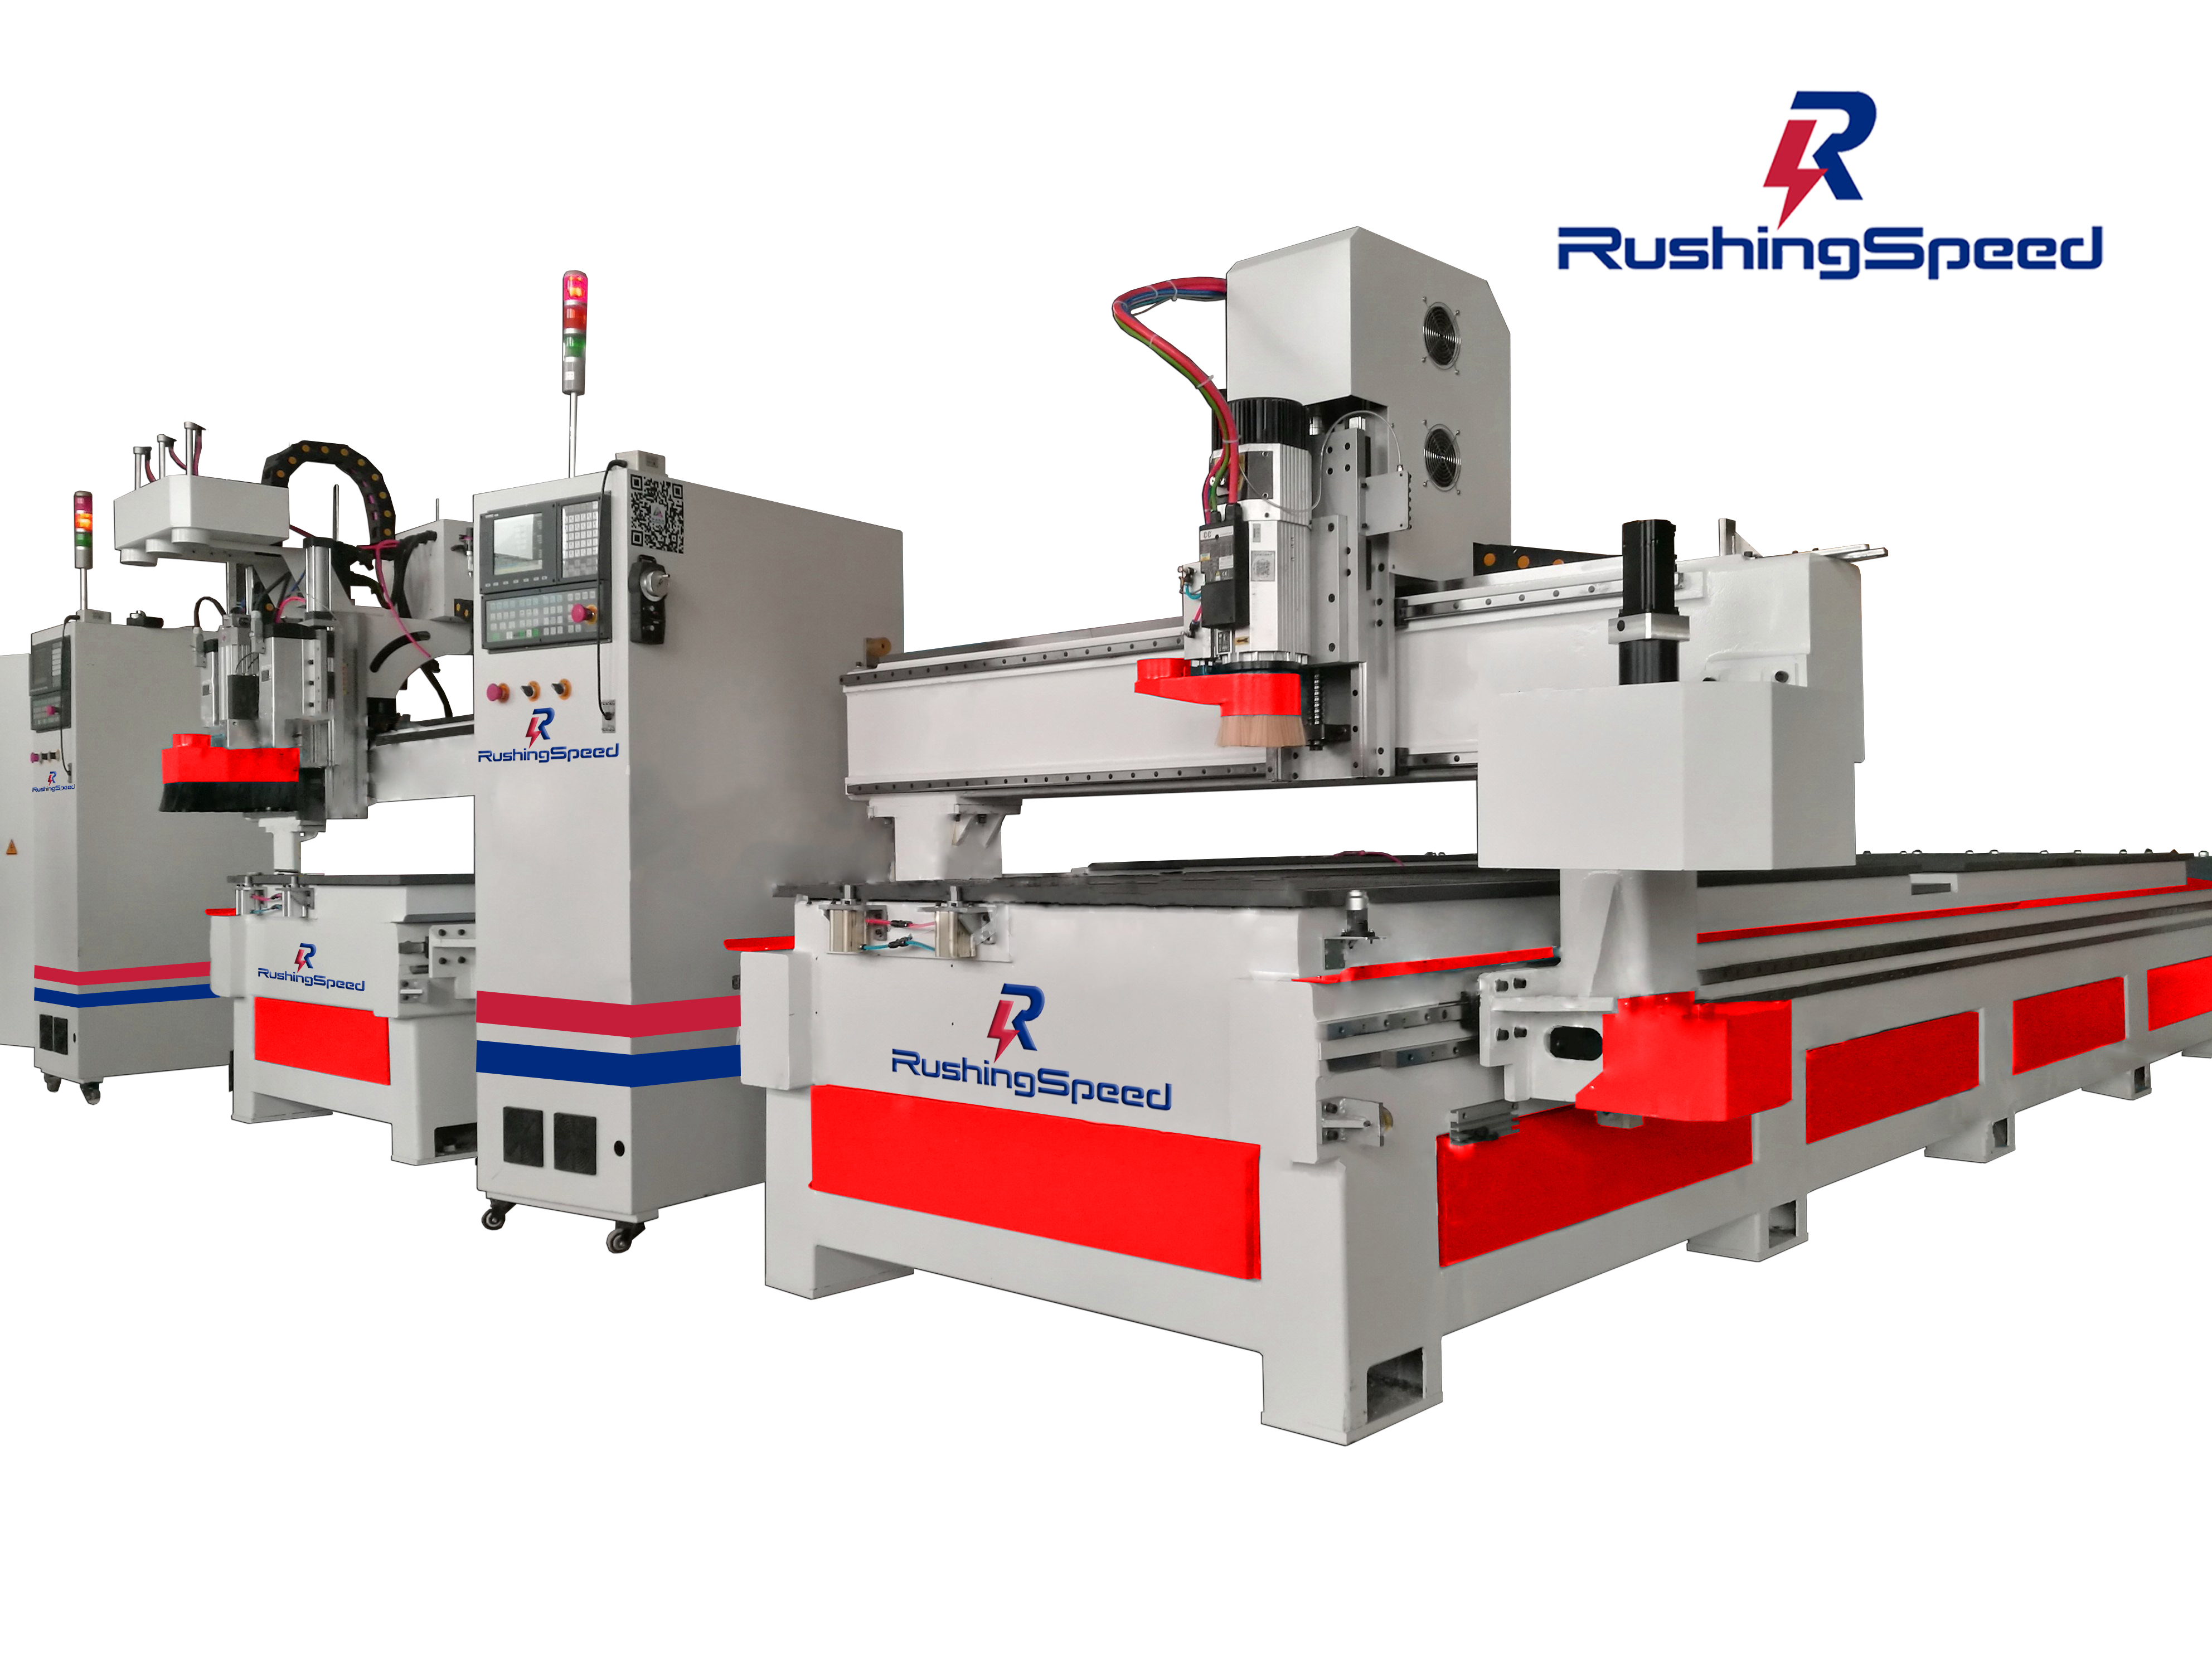 CNC Cutting Router Machine RSP-2500/D2A